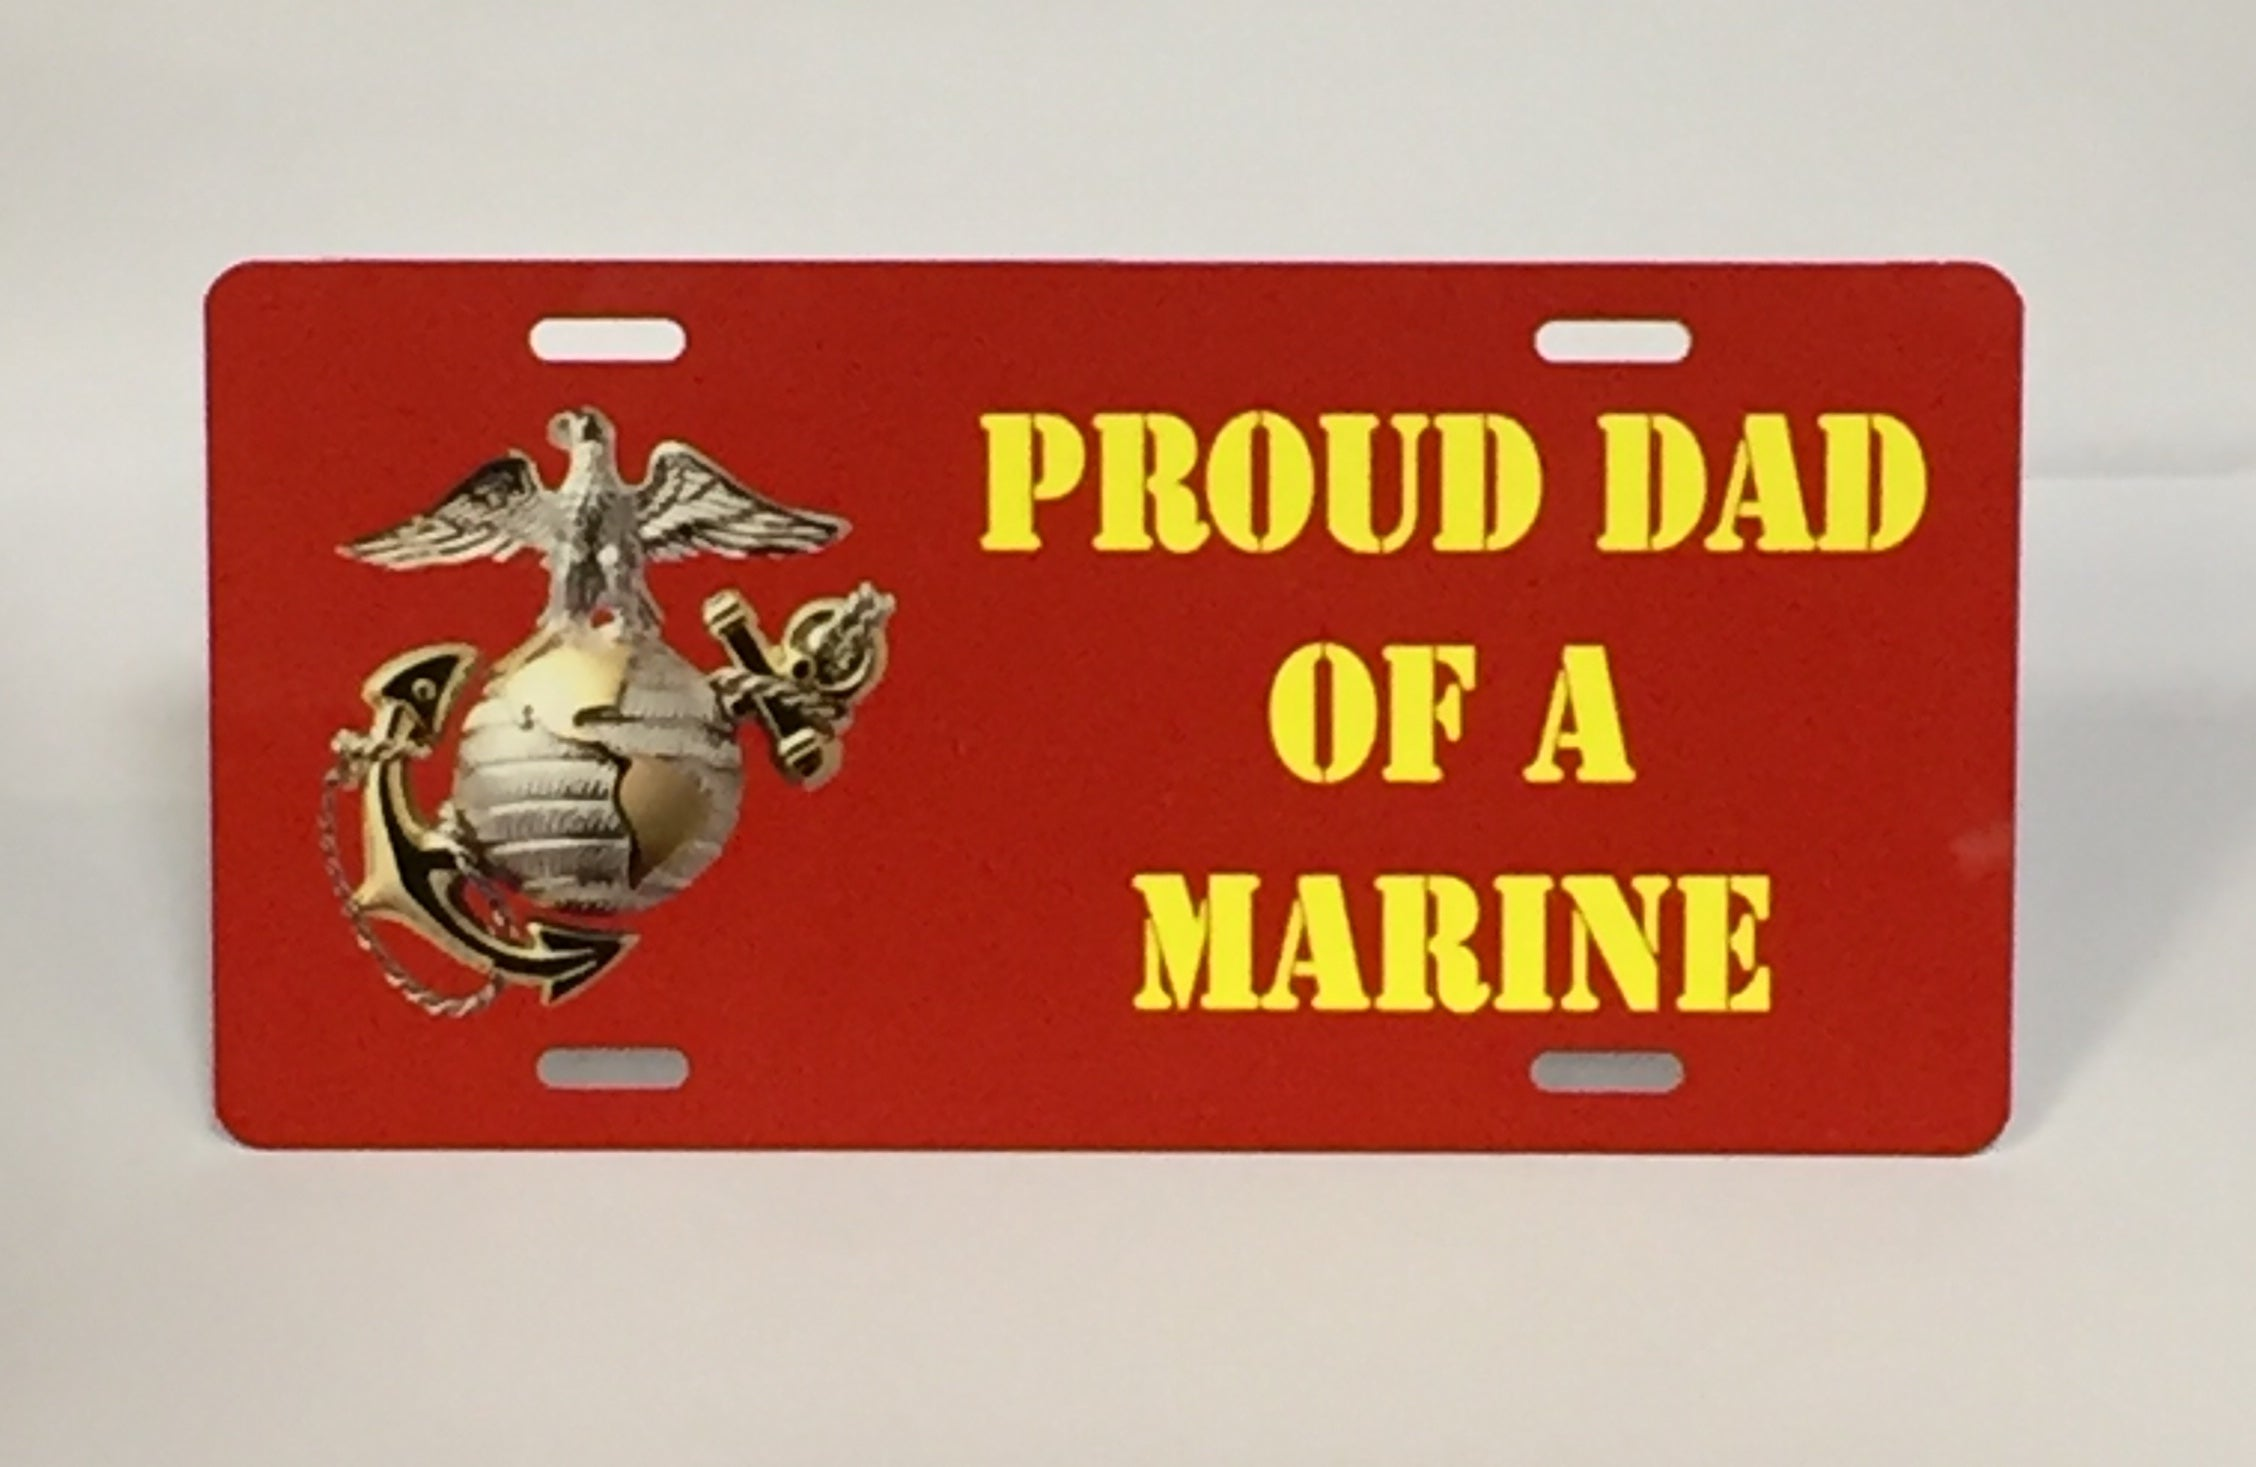 Proud Dad Of A Marine License Plate